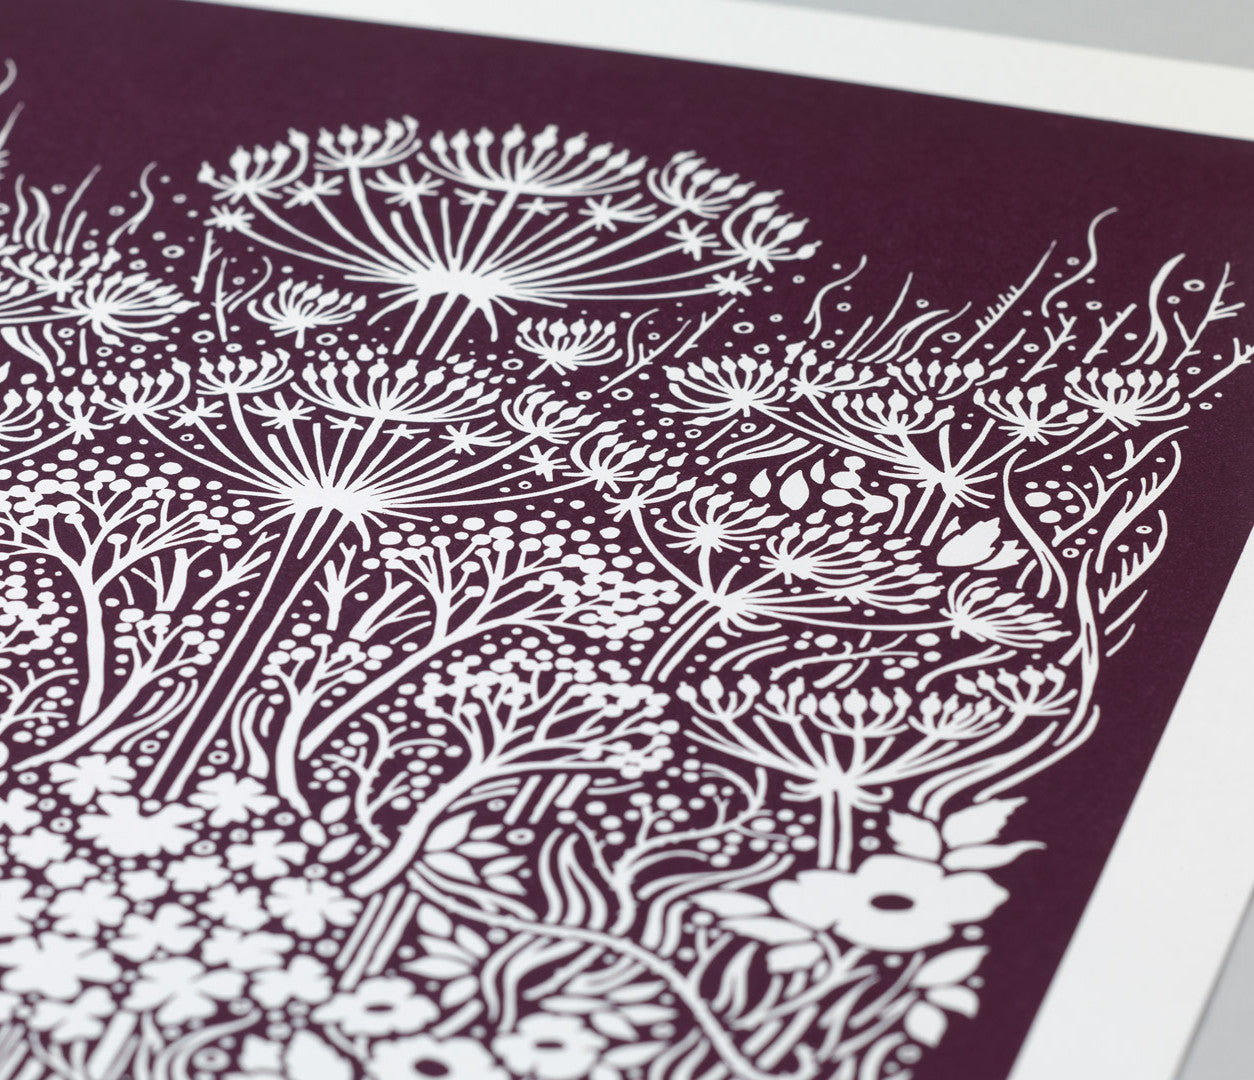 'Meadow' Art Print in Dark Mulberry